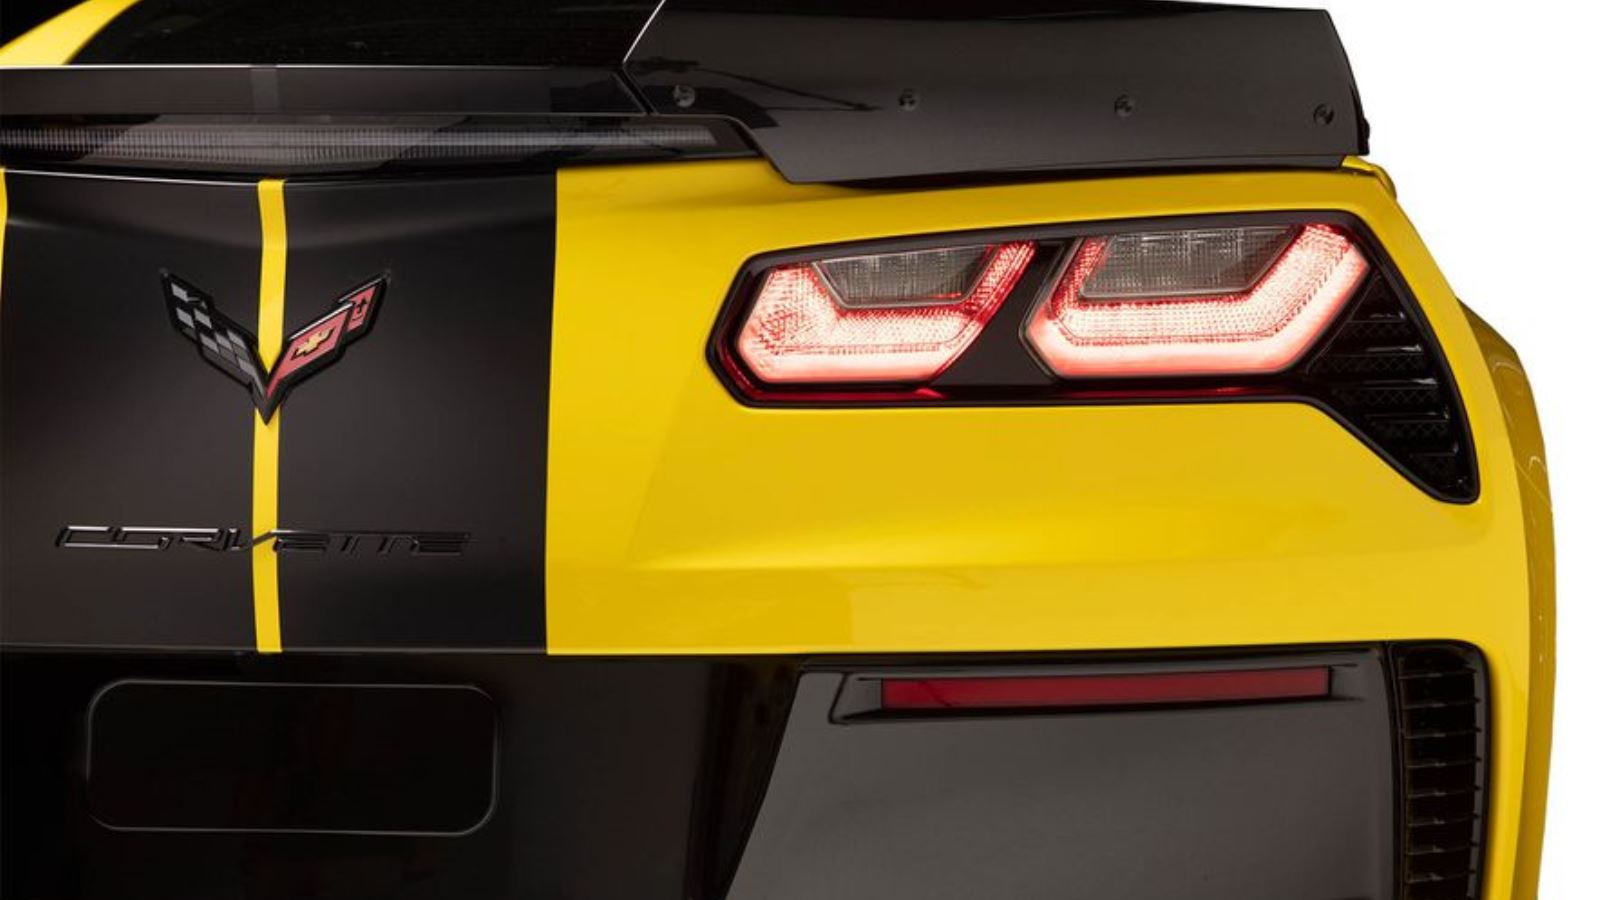 Hertz Offers Special Edition C7 Z06 for Rent